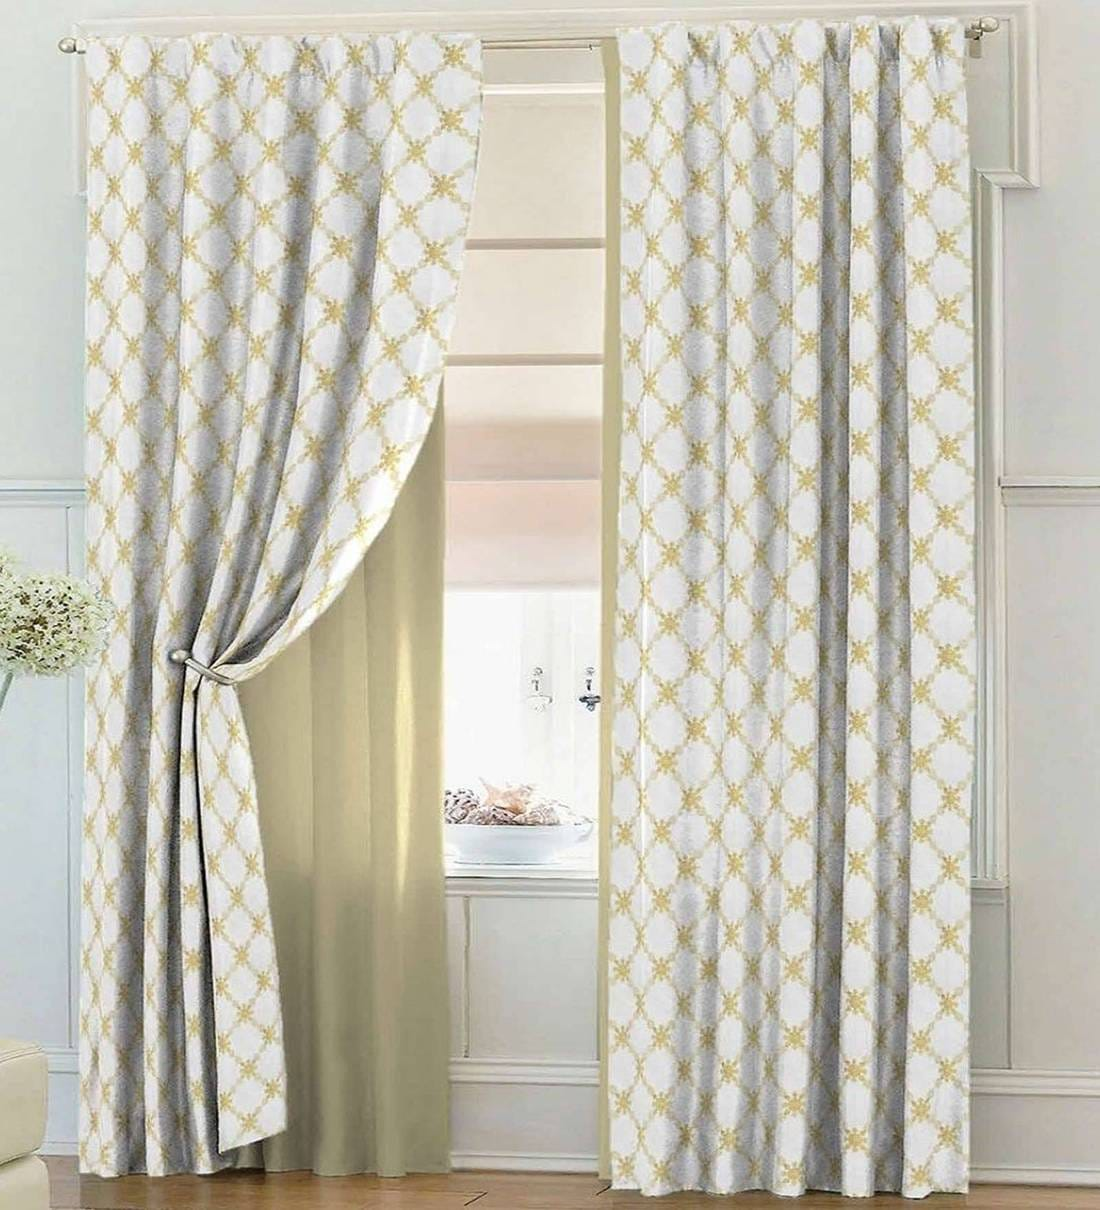 Buy Yellow Sheer Tissue 7 Feet Rod Pocket Door Curtain By Solaj Online Floral Door Curtains Furnishings Home Decor Pepperfry Product